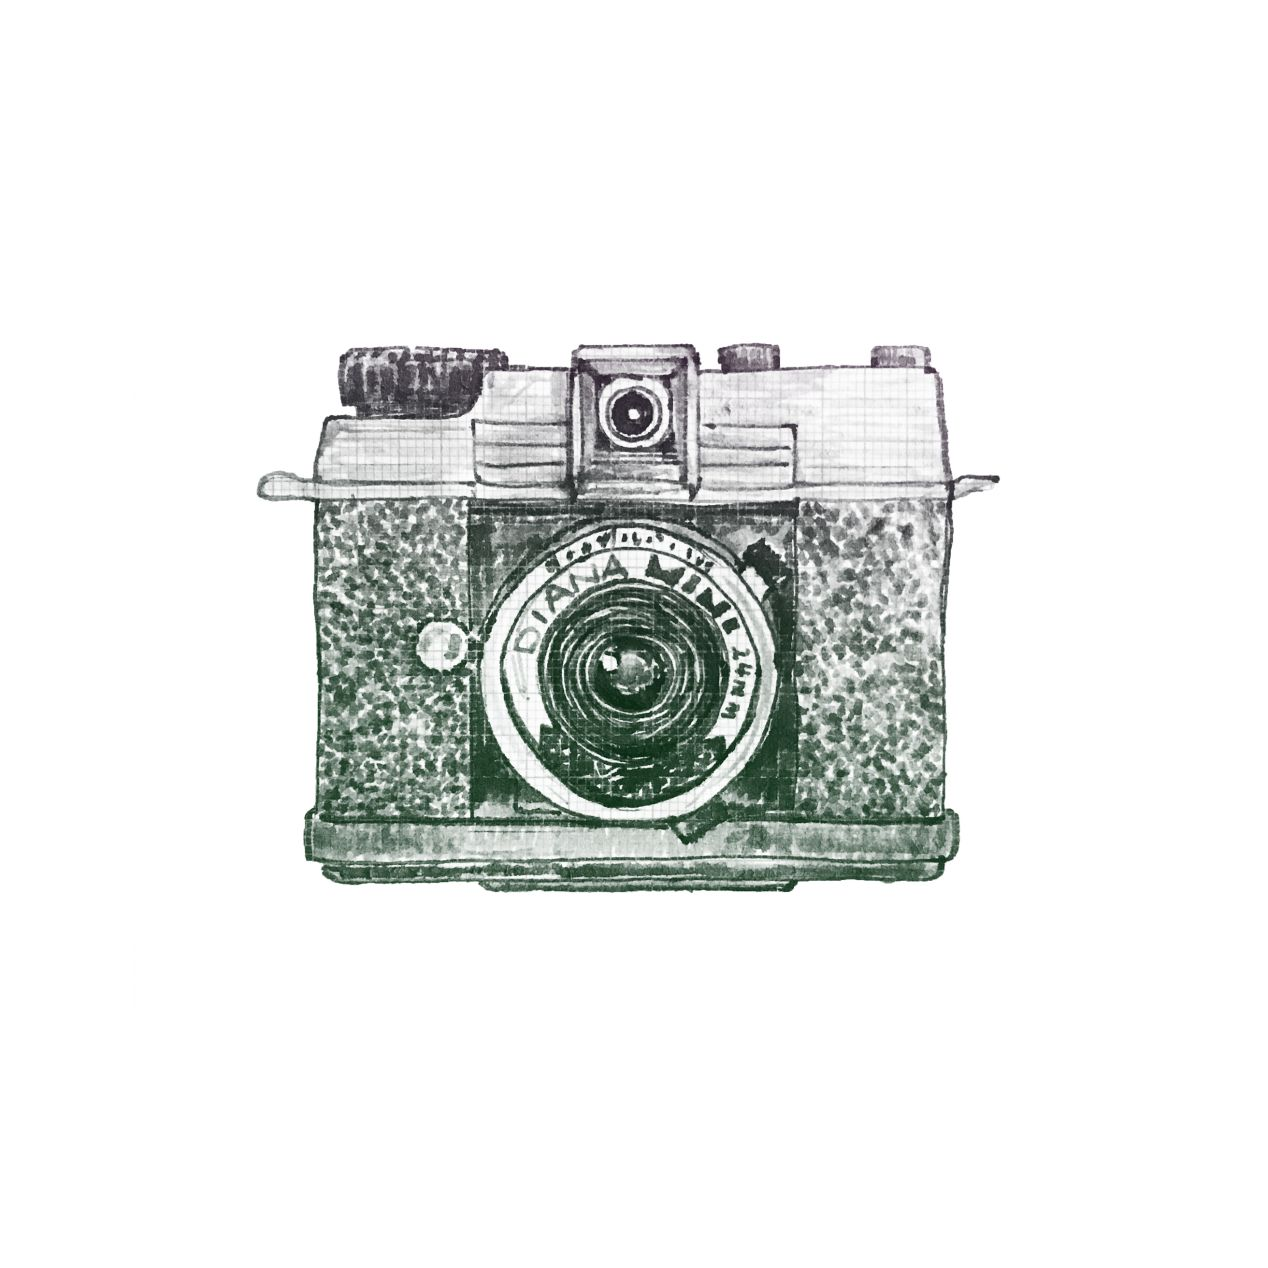 Lomography Diana Mini is a fixed 24mm f/8 lens 35mm viewfinder camera. Manual. Launched in 2007, Austria. $.